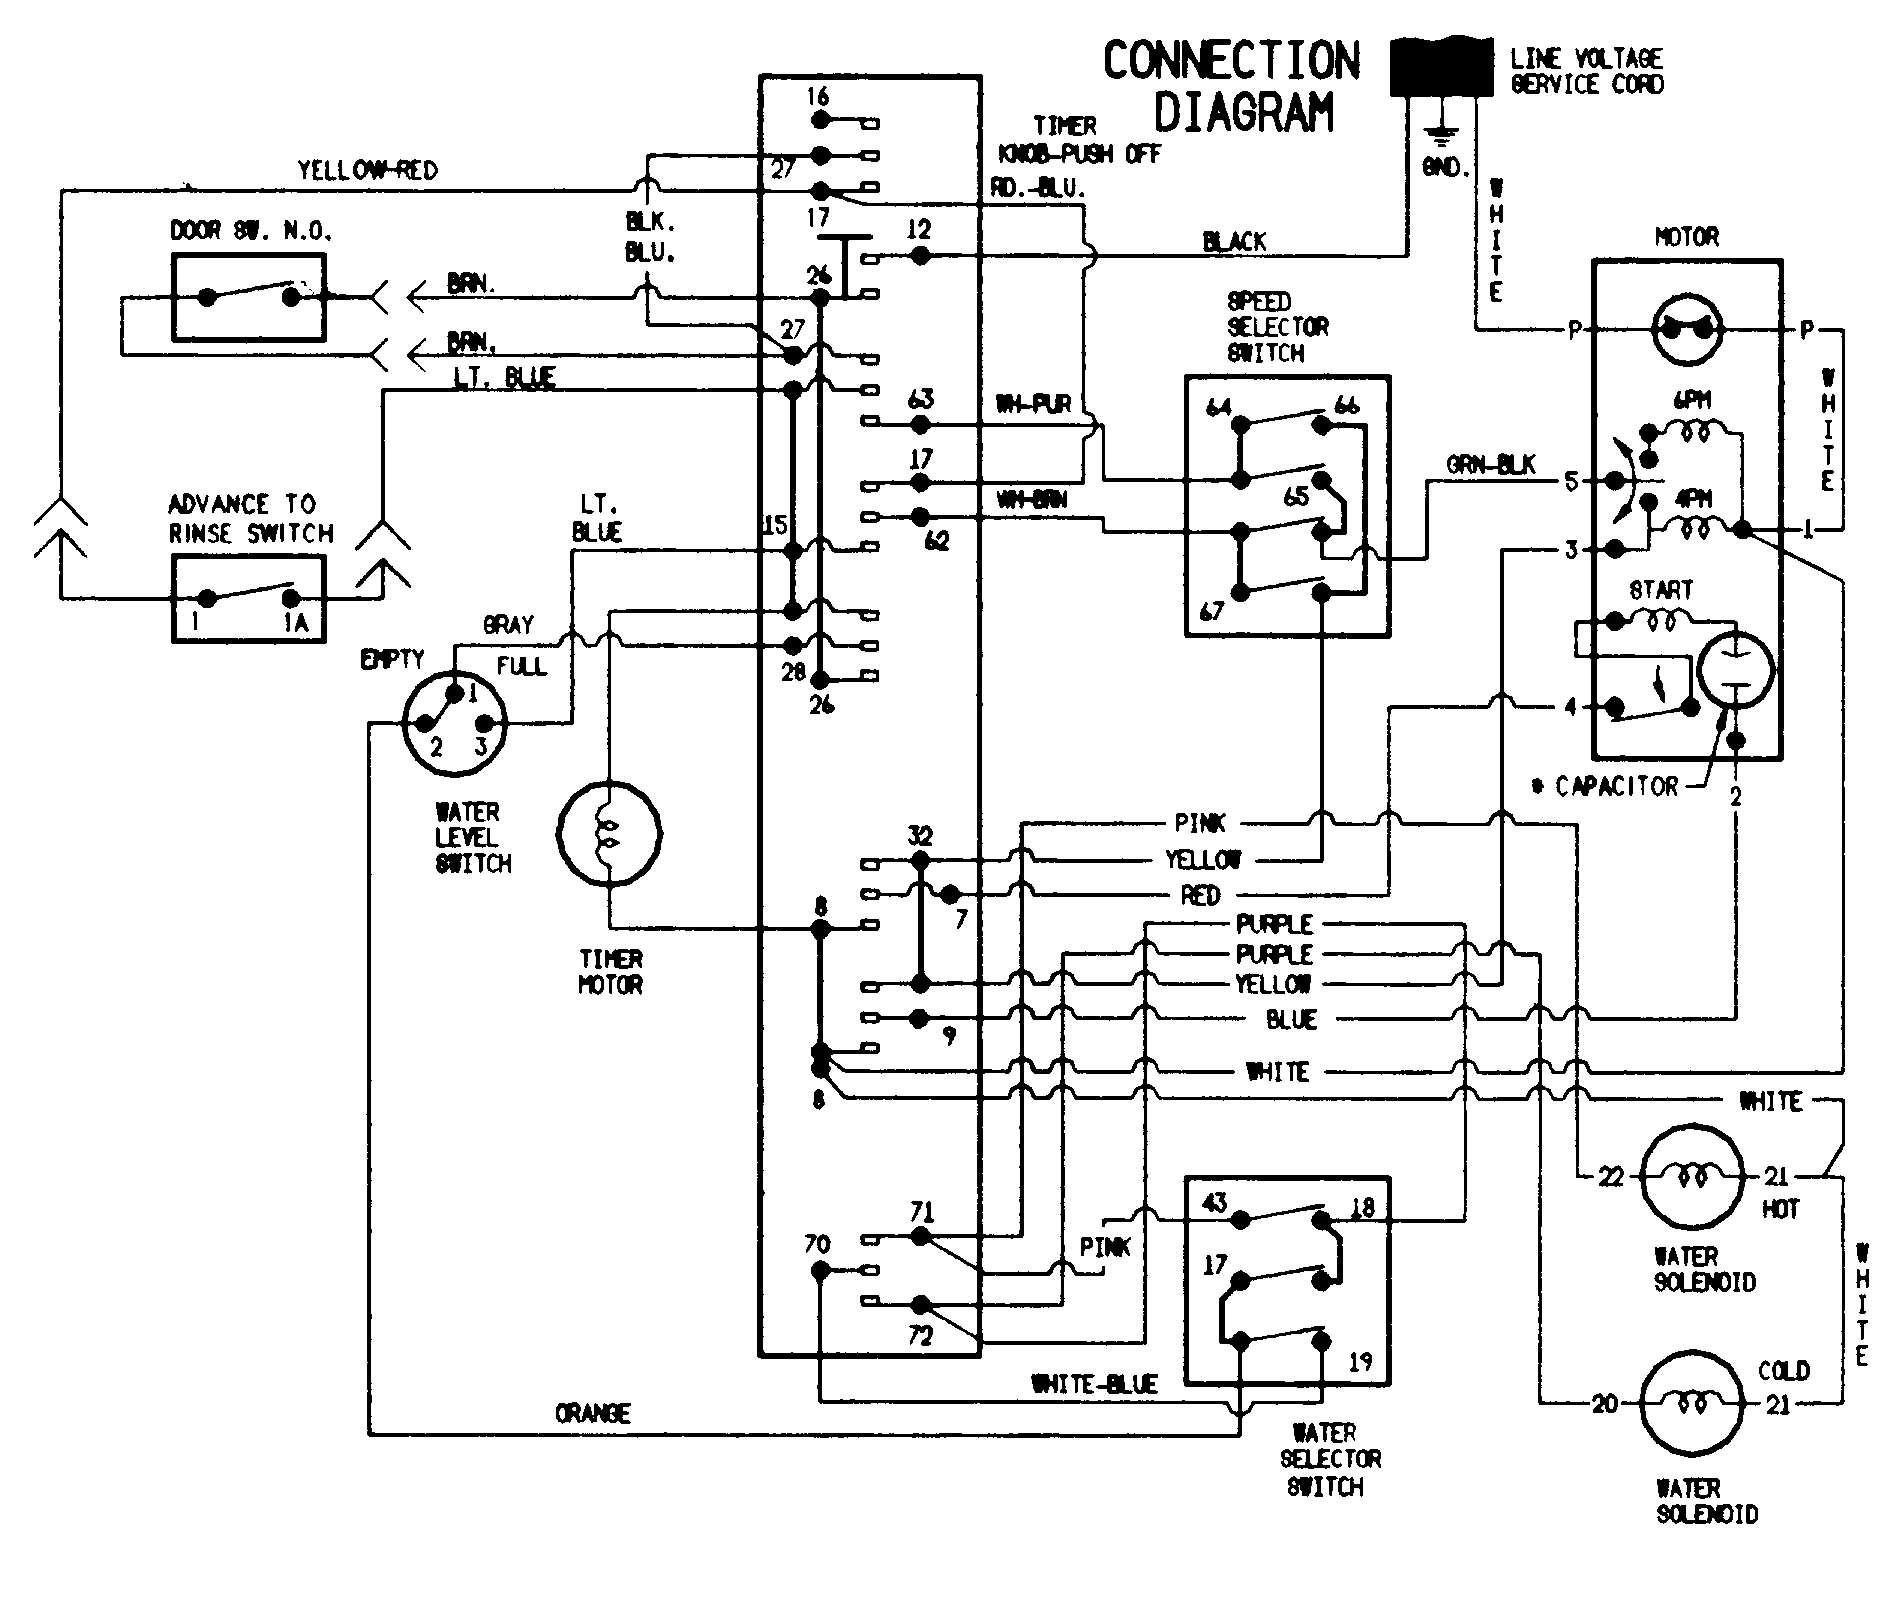 wiring diagram washing machine lg with Index on US5585704 in addition How To Test A Washing Machine Motor further Kenmore 80 Series Dryer Wiring Schematic furthermore Dishwasher Motor Wiring Diagram as well Whirlpool Duet Washer Wiring.